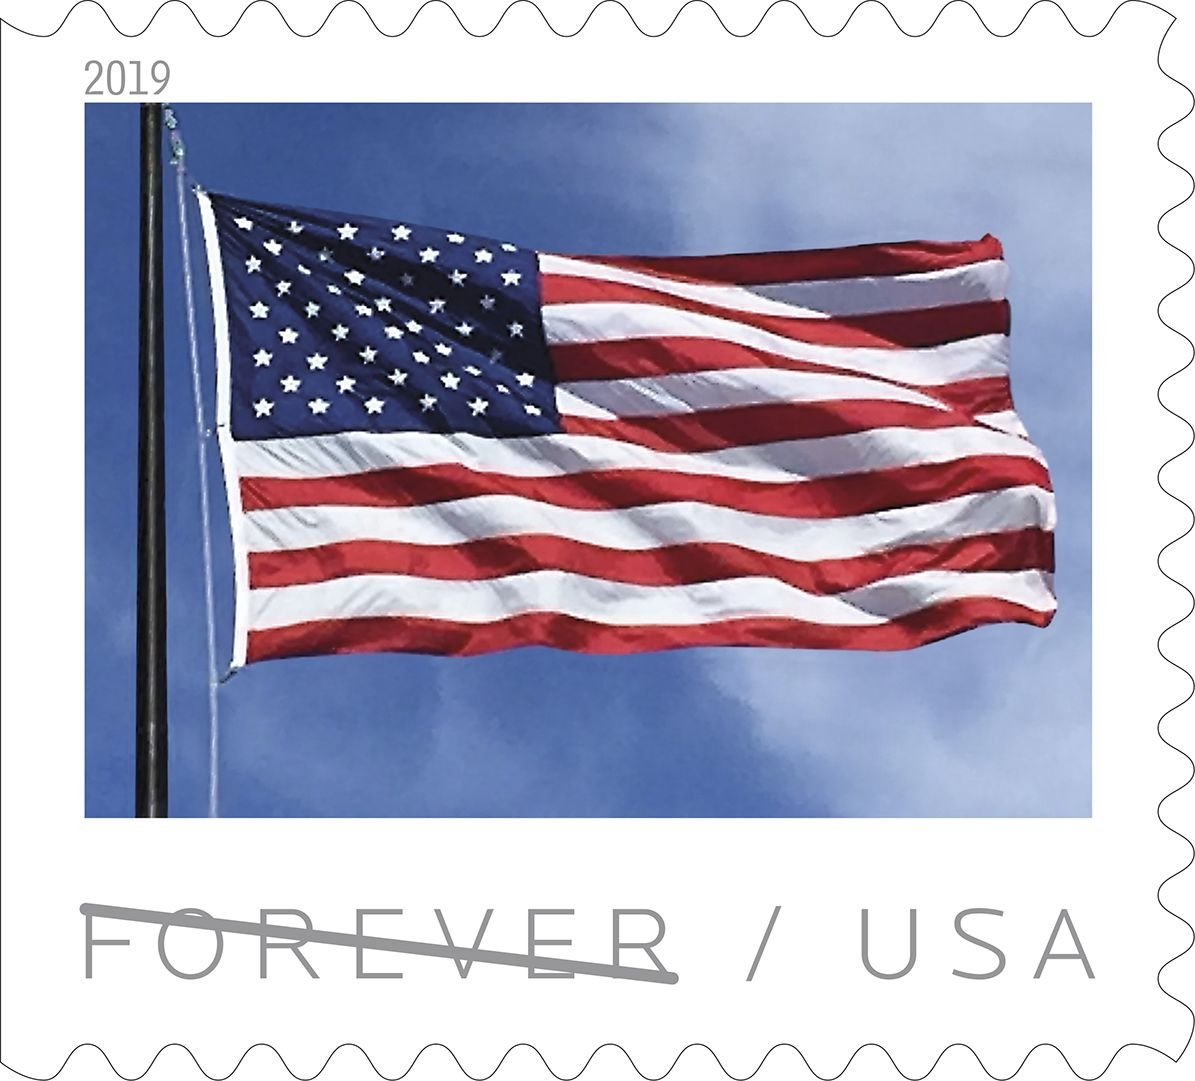 Us Postage Stamp Day 2019